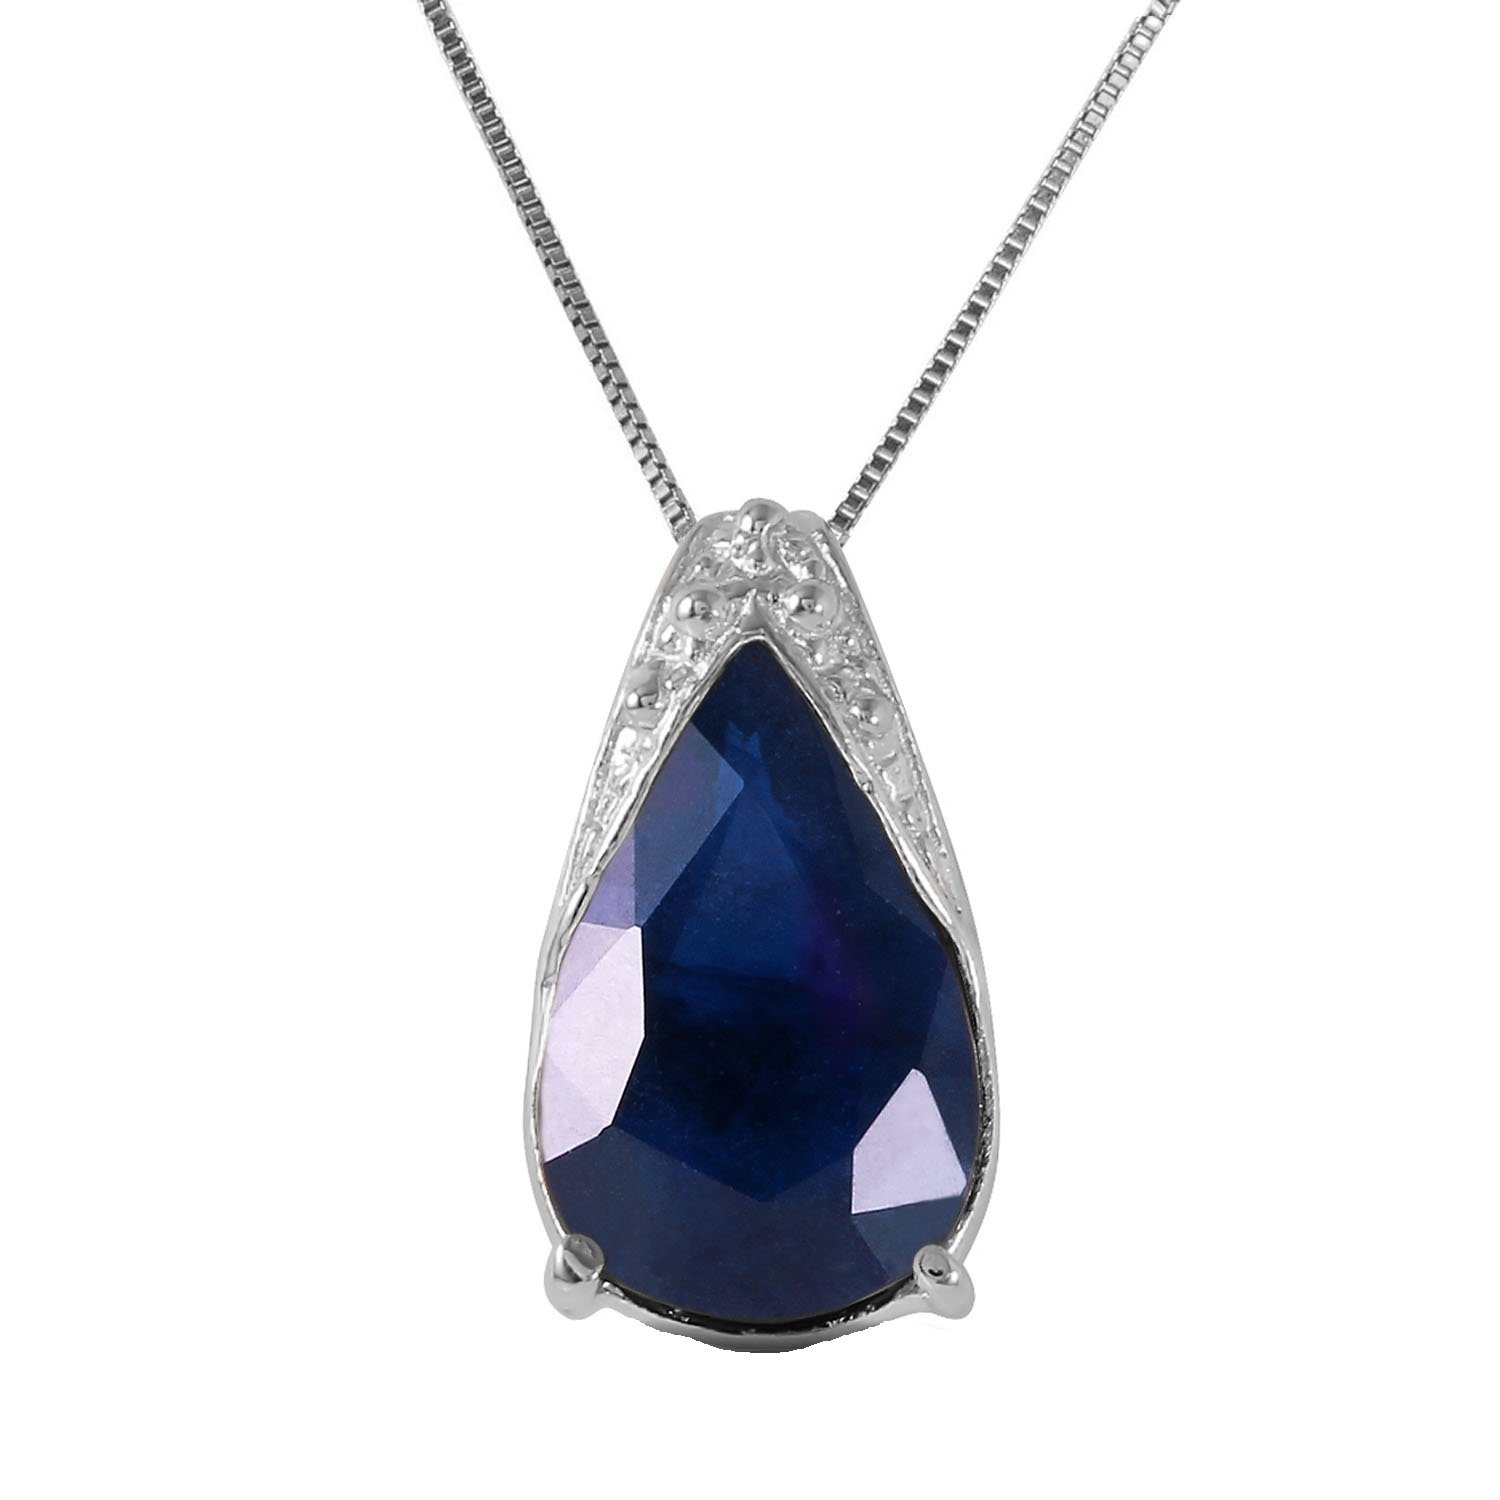 Galaxy Gold 14k 14'' Solid White Gold Necklace 4.65 Carat Natural Sapphire Pendan